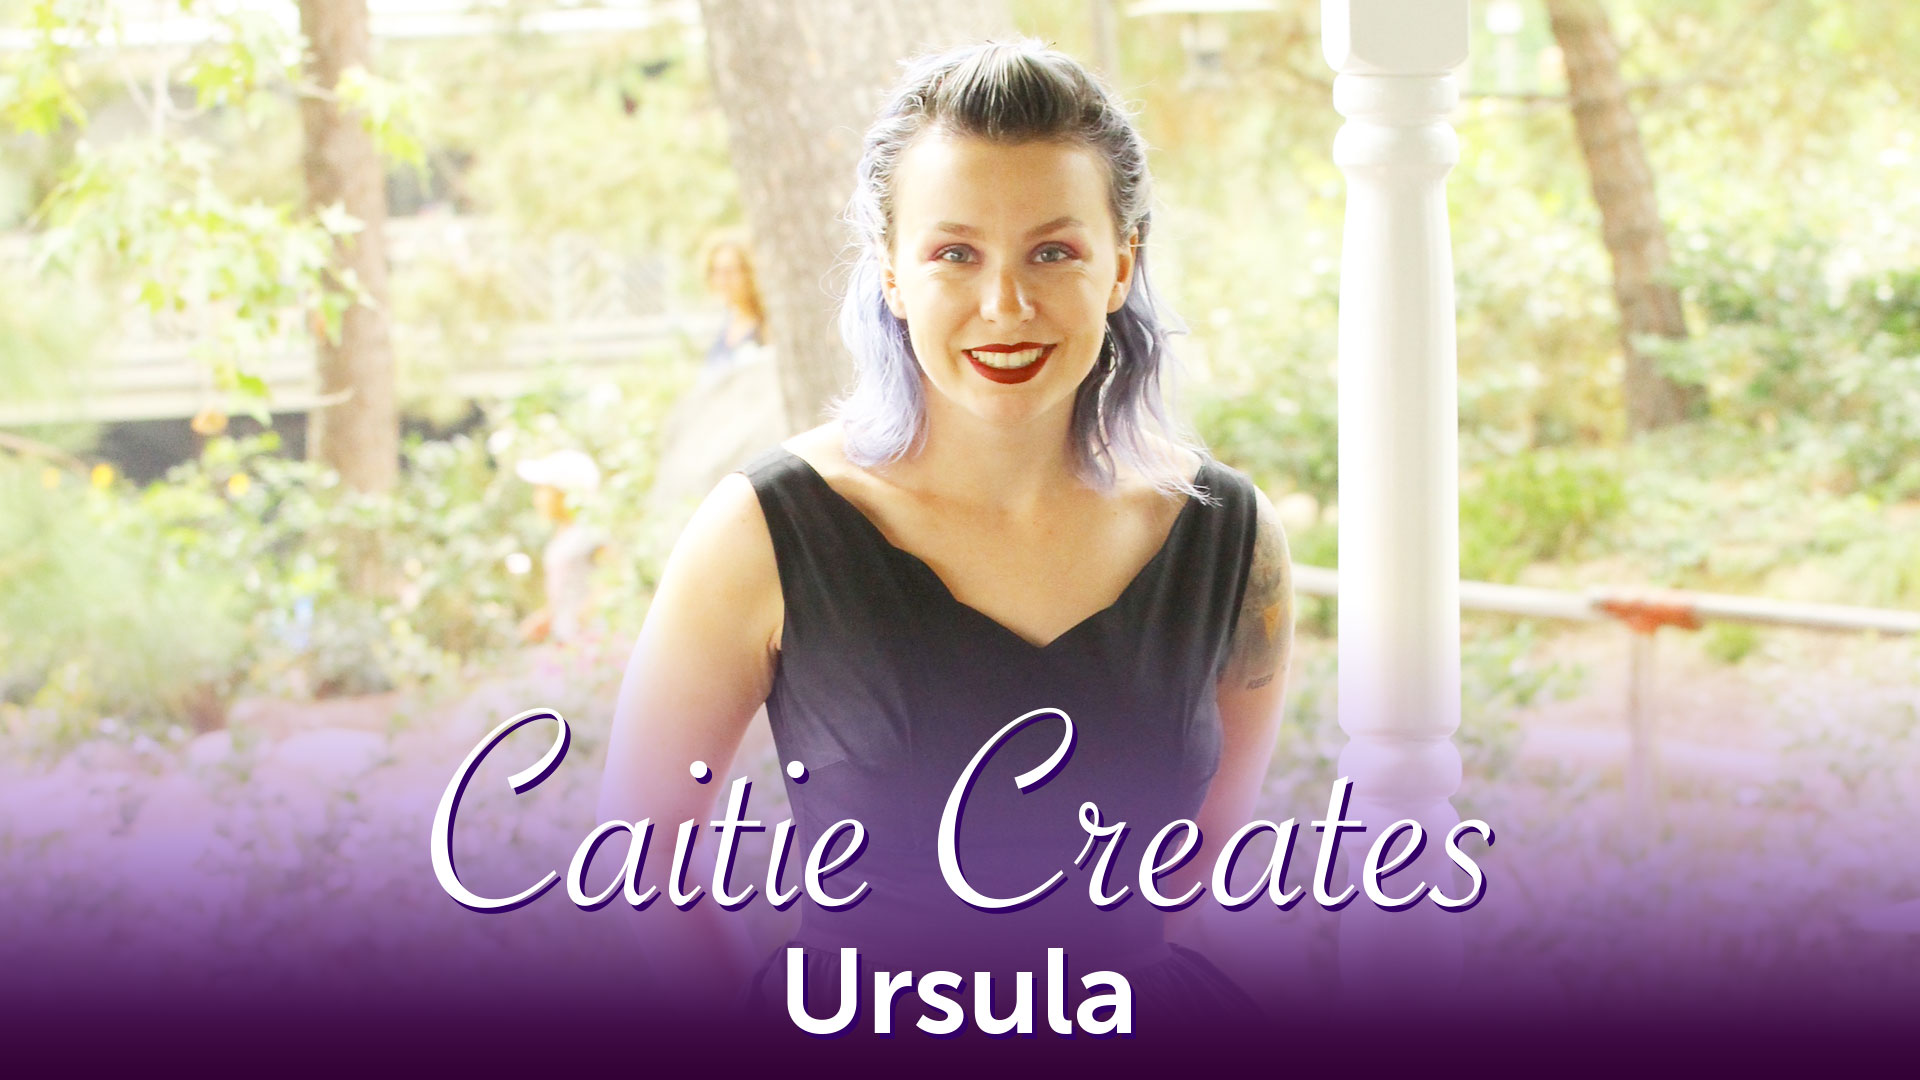 Caitie Creates - Ursula